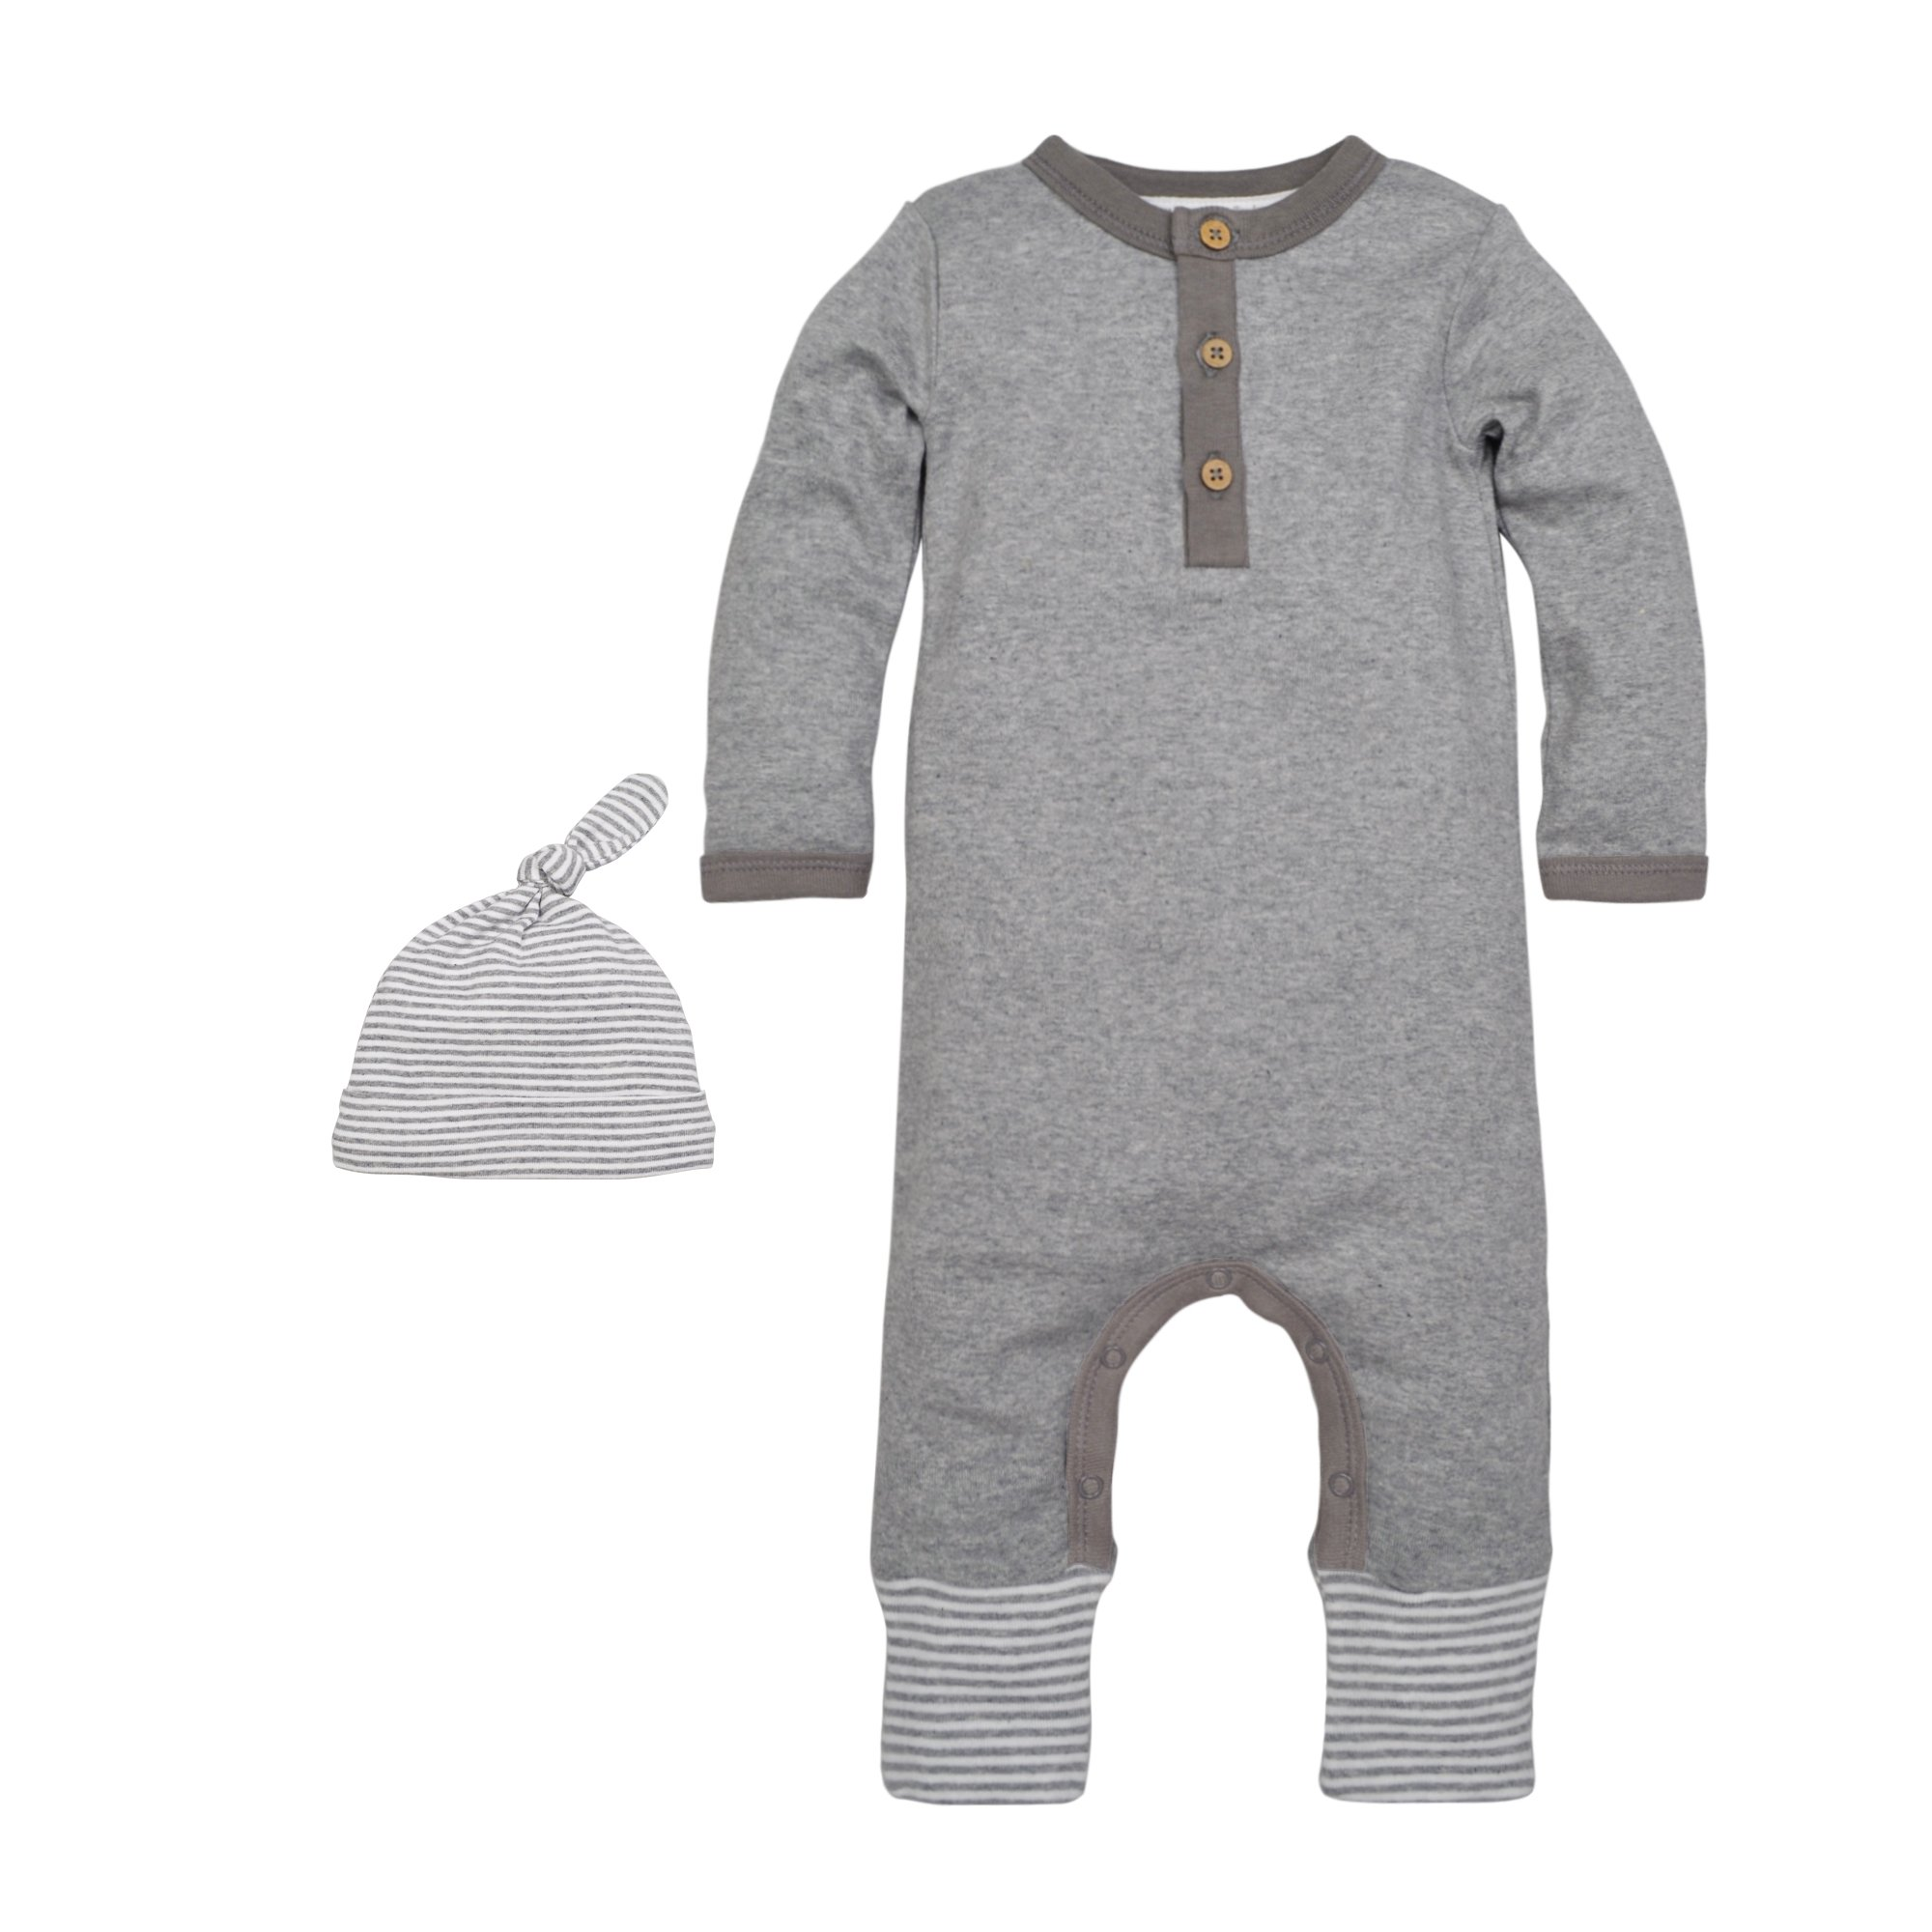 Burt's Bees Baby Baby Boys' Organic One-Piece Romper Coverall, Heather Grey Henley Coverall & Hat Set, 0-3 Months